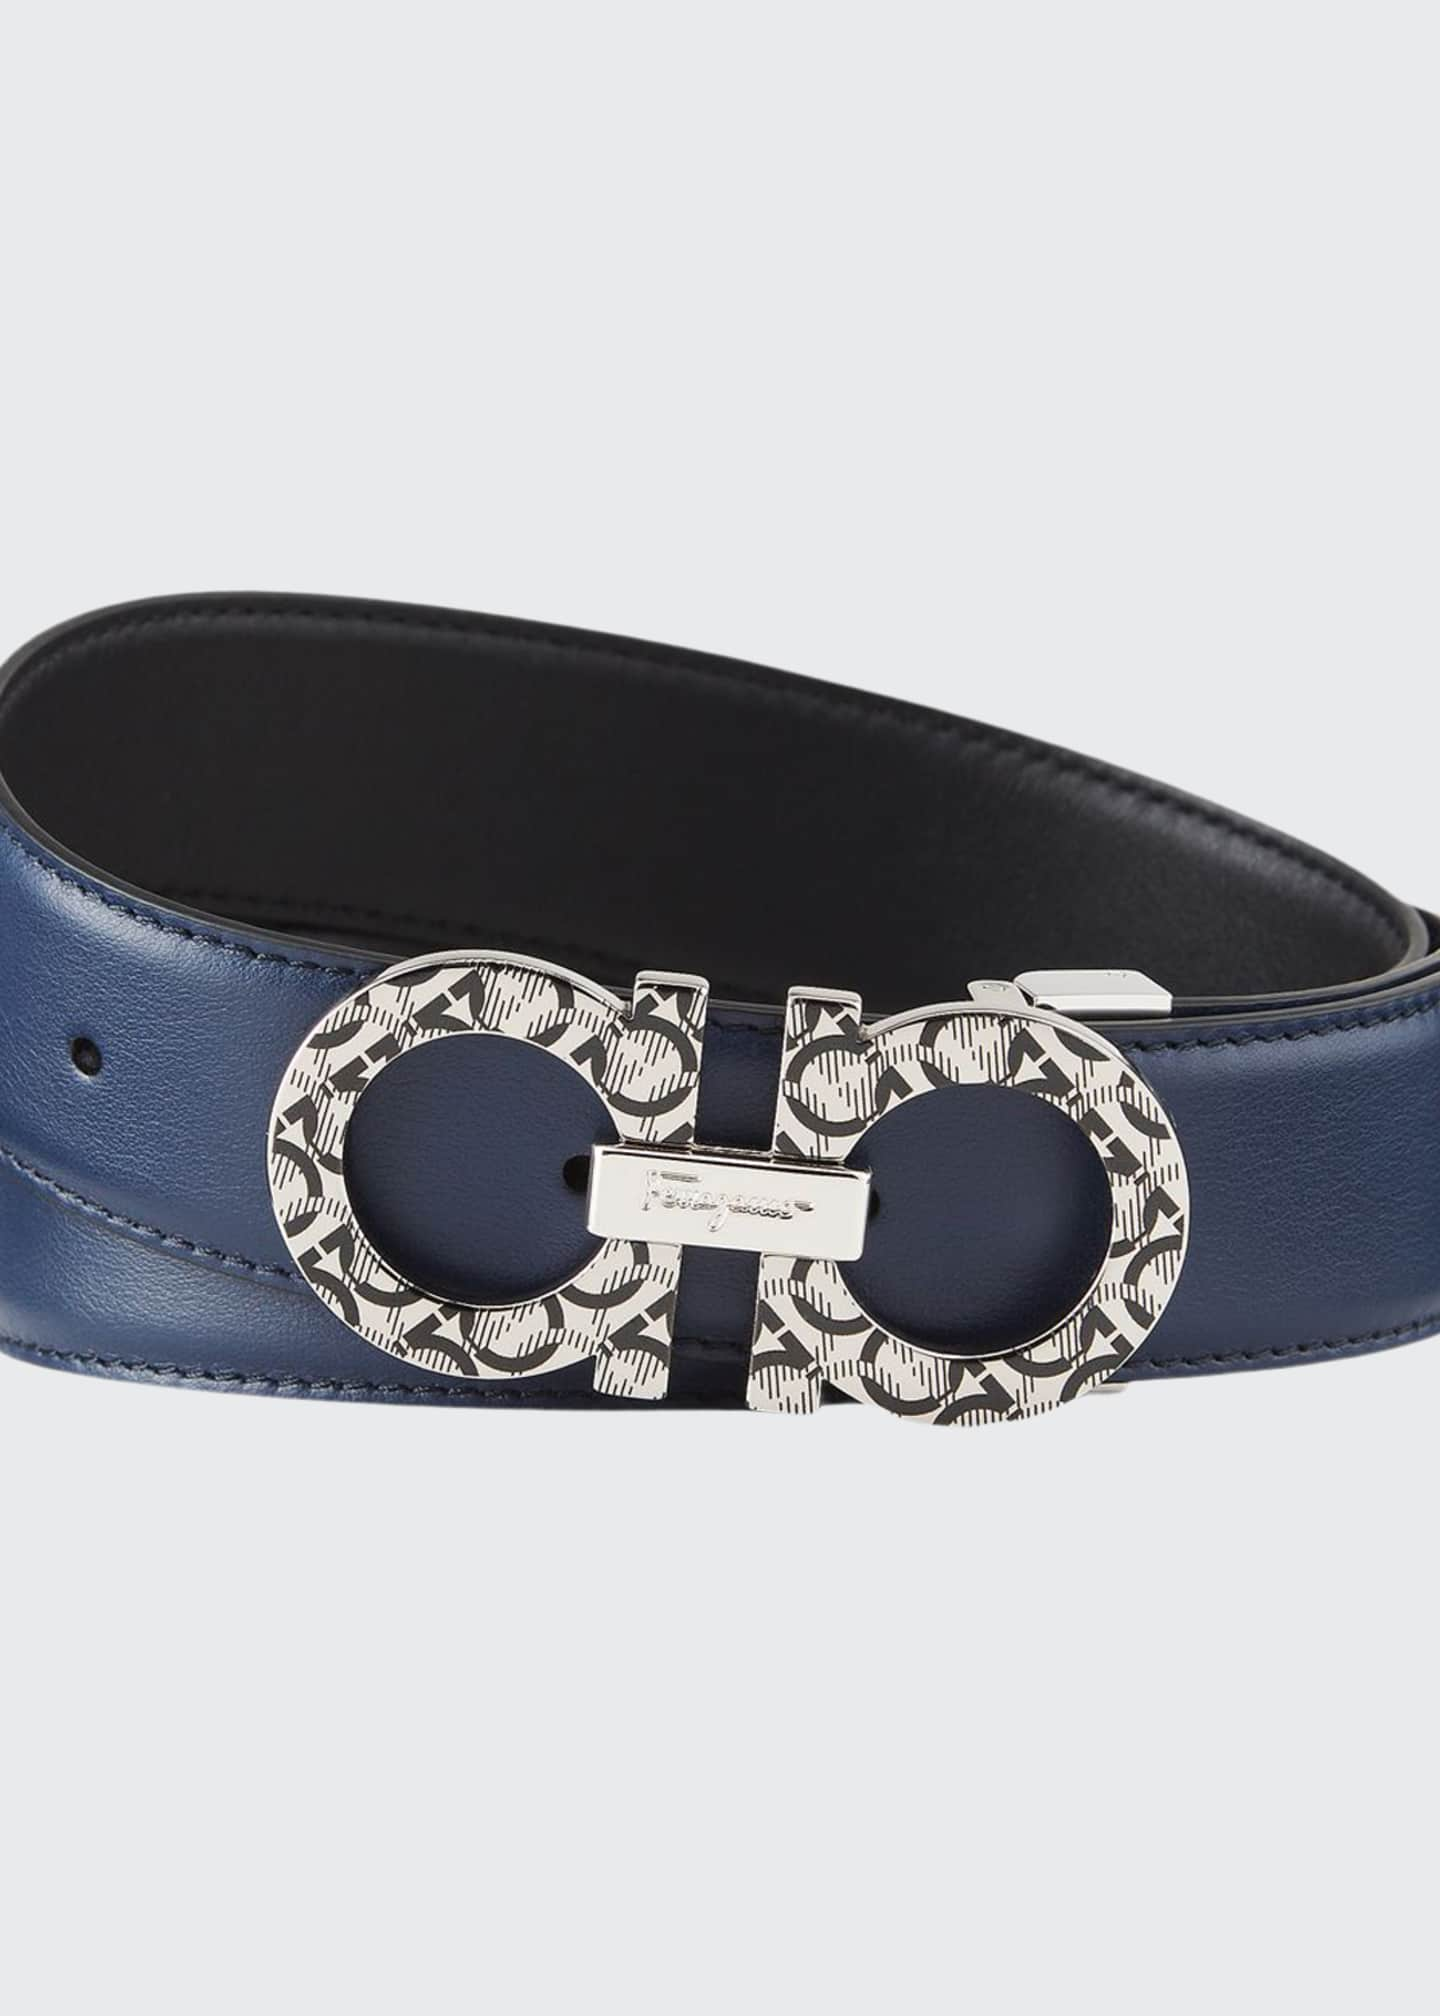 Men's Printed-Gancini Leather Belt